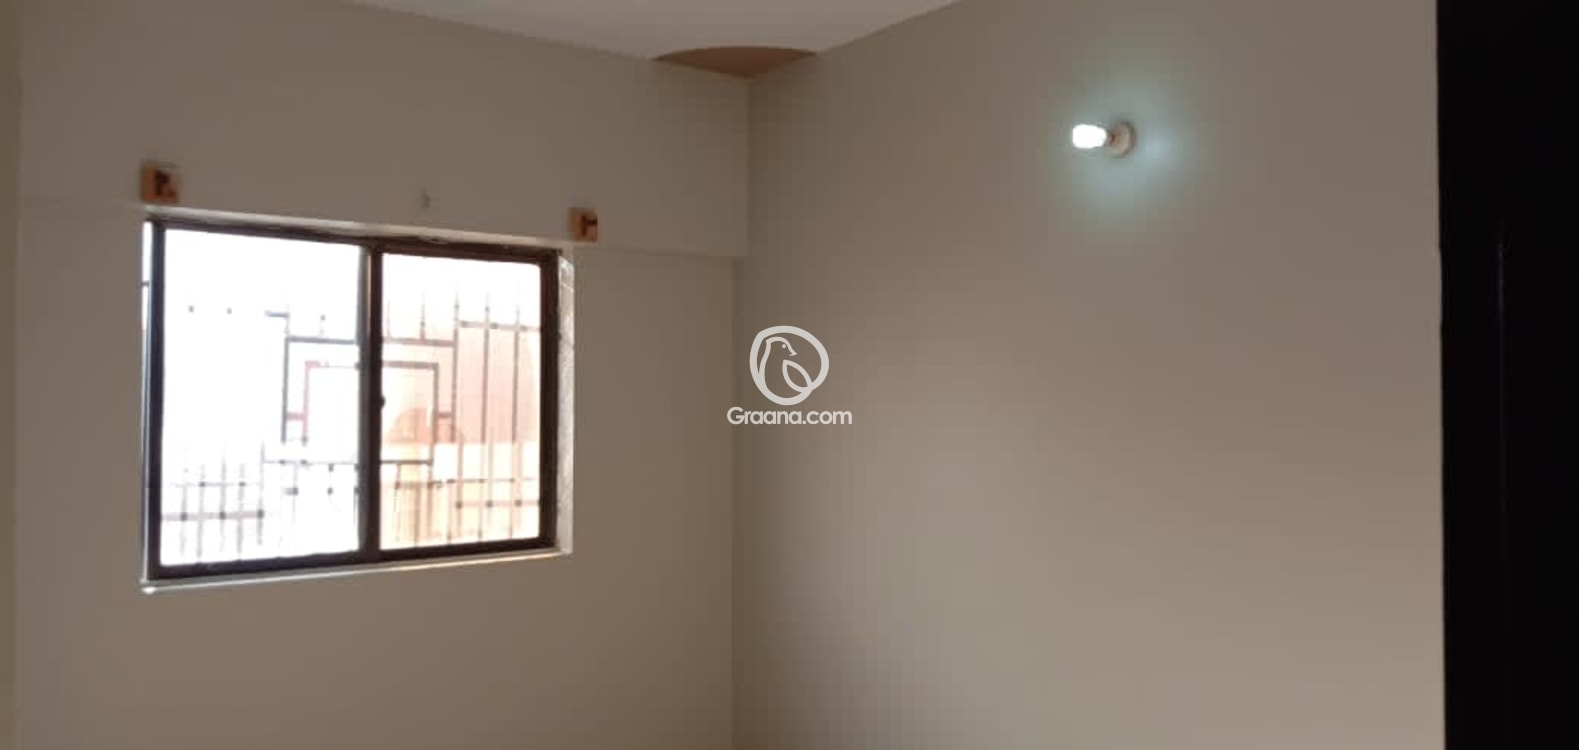 4th Floor  800 Sqft  Apartment for Sale | Graana.com